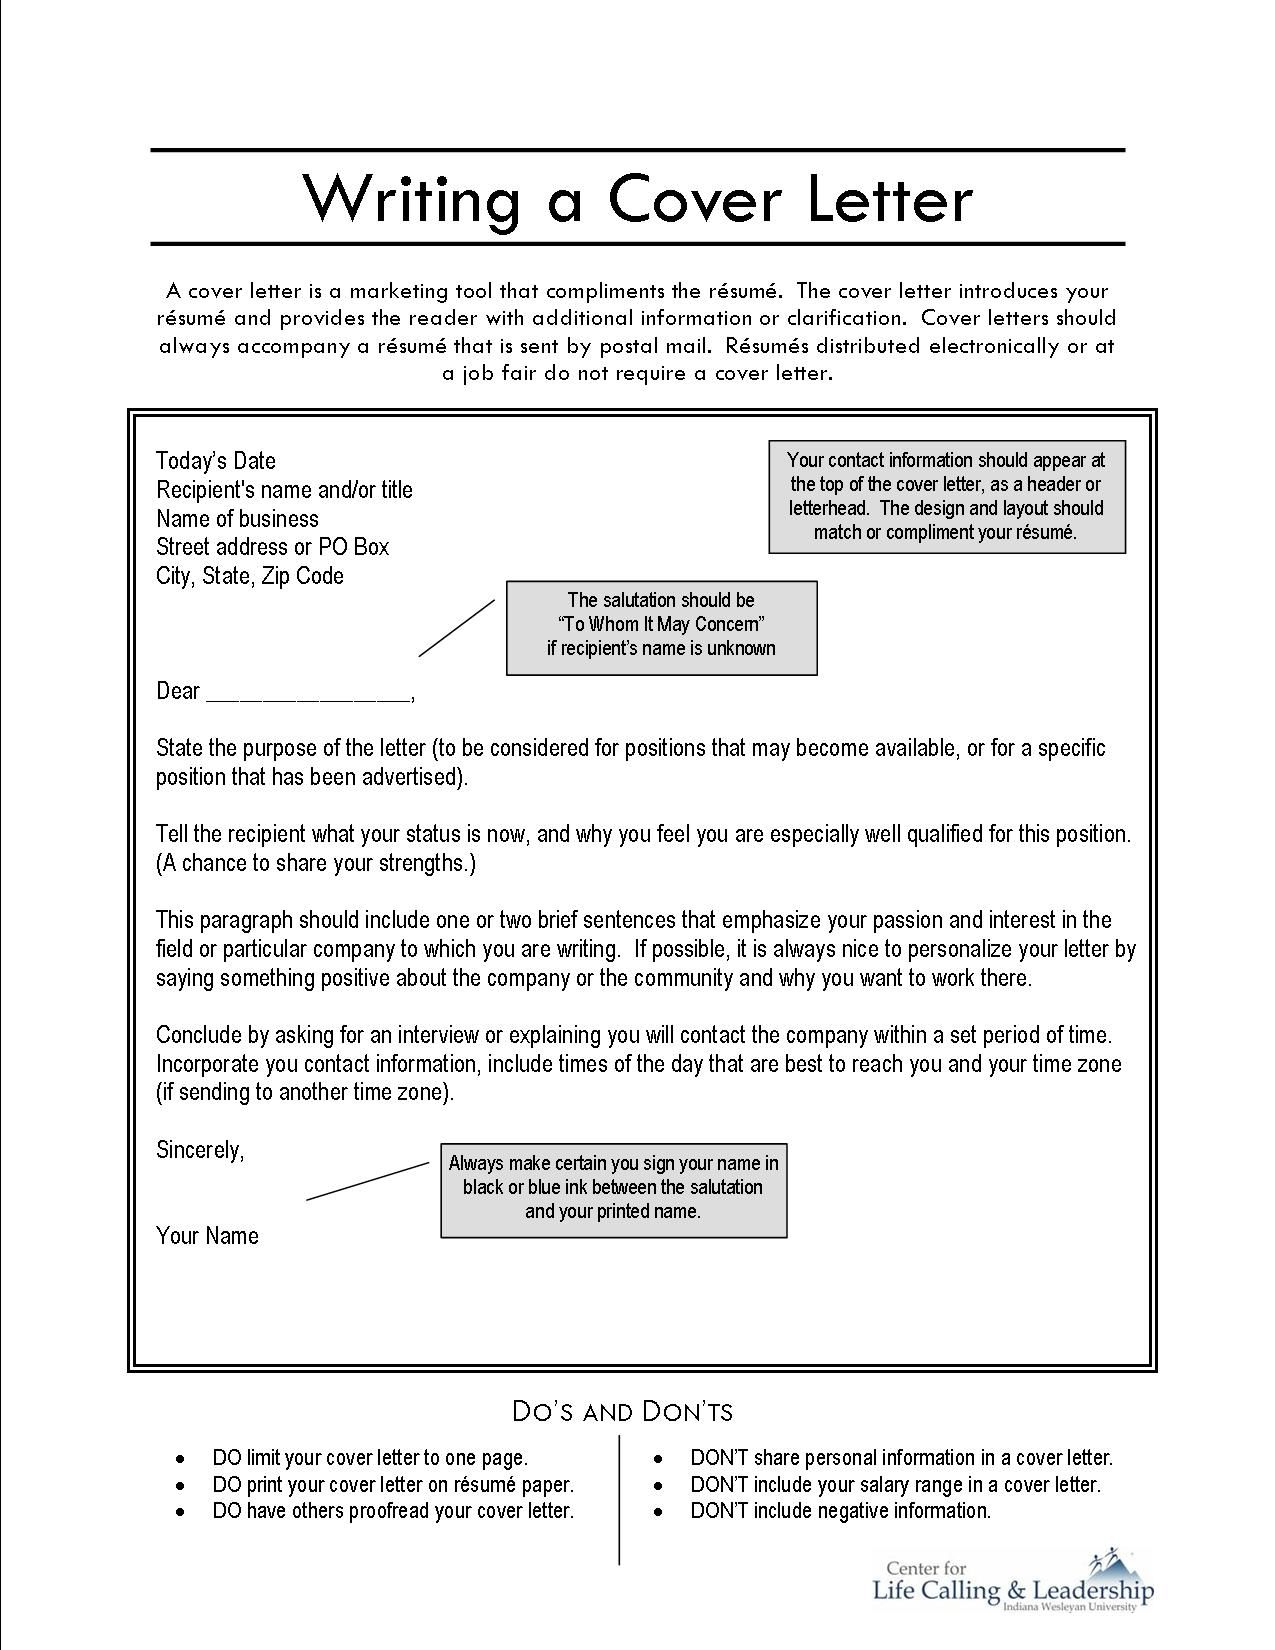 Writing Cover Letters For Resumes Writing A Cover Letter Job Application Resources